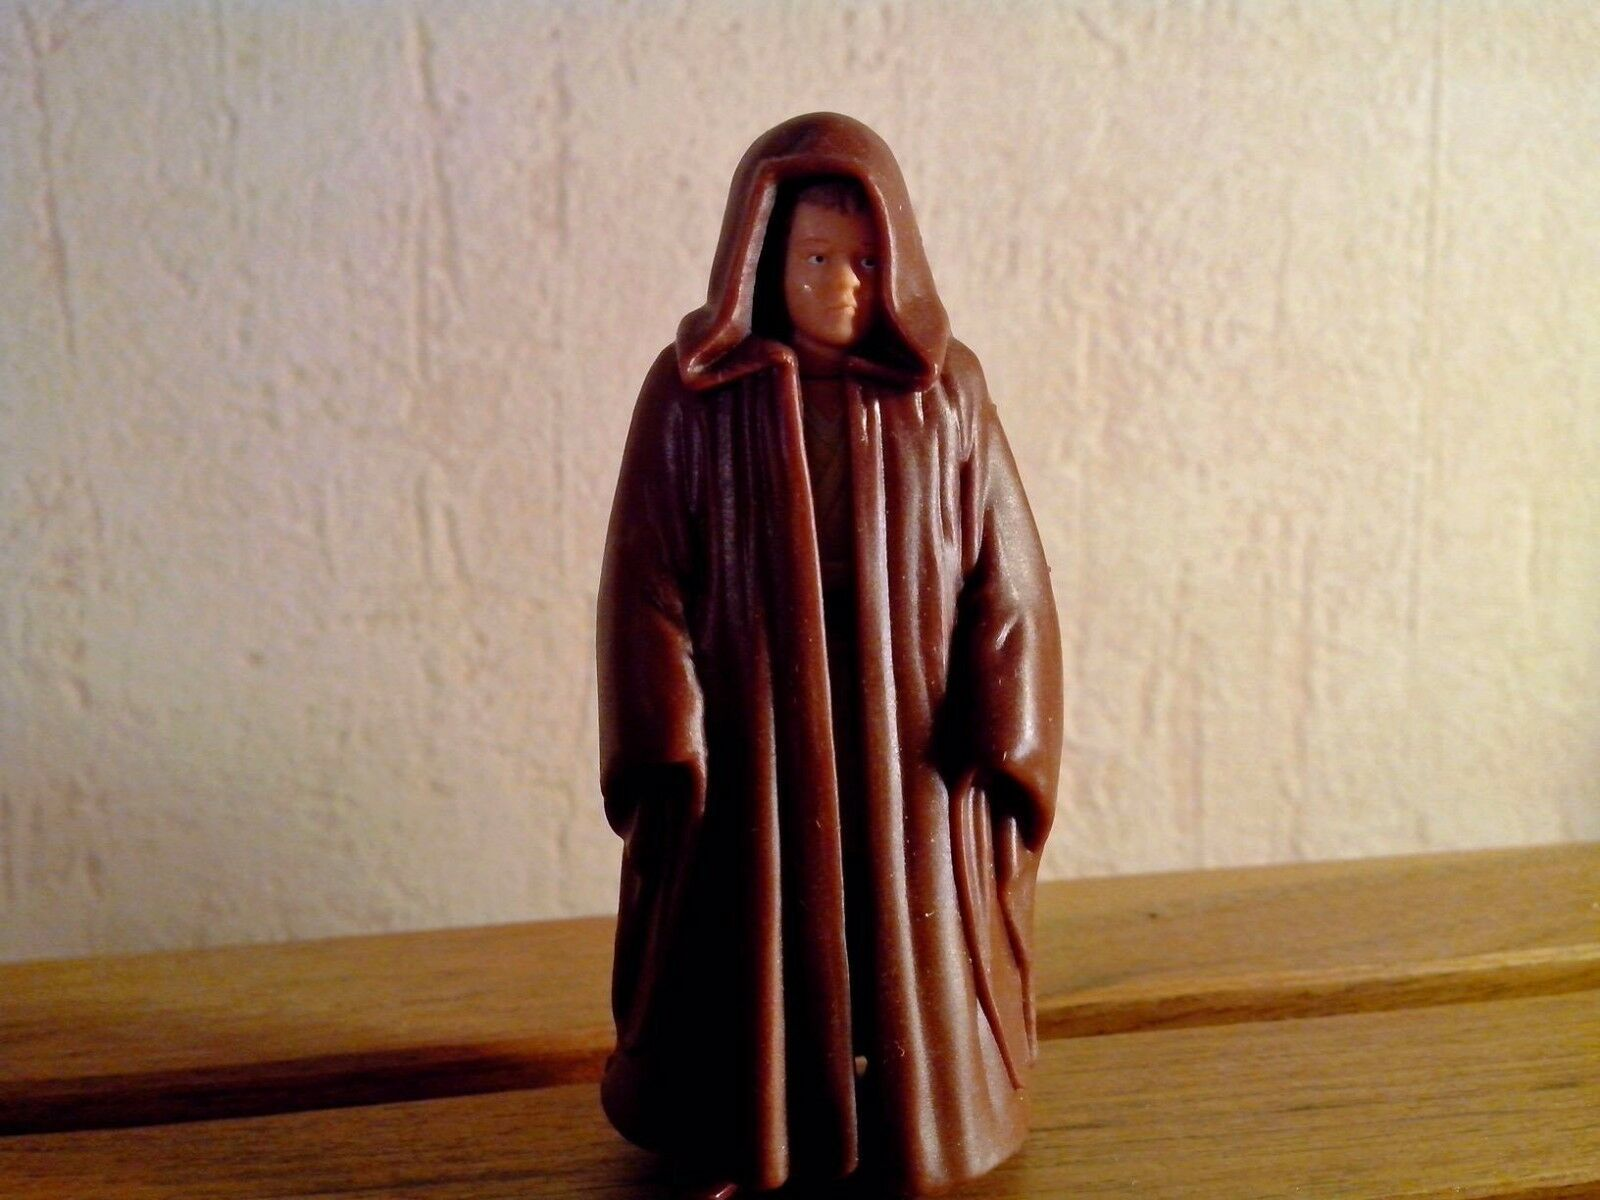 StarWars figurine : STAR WARS - FIGURINE - ANAKIN SKYWALKER - CORUSCANT